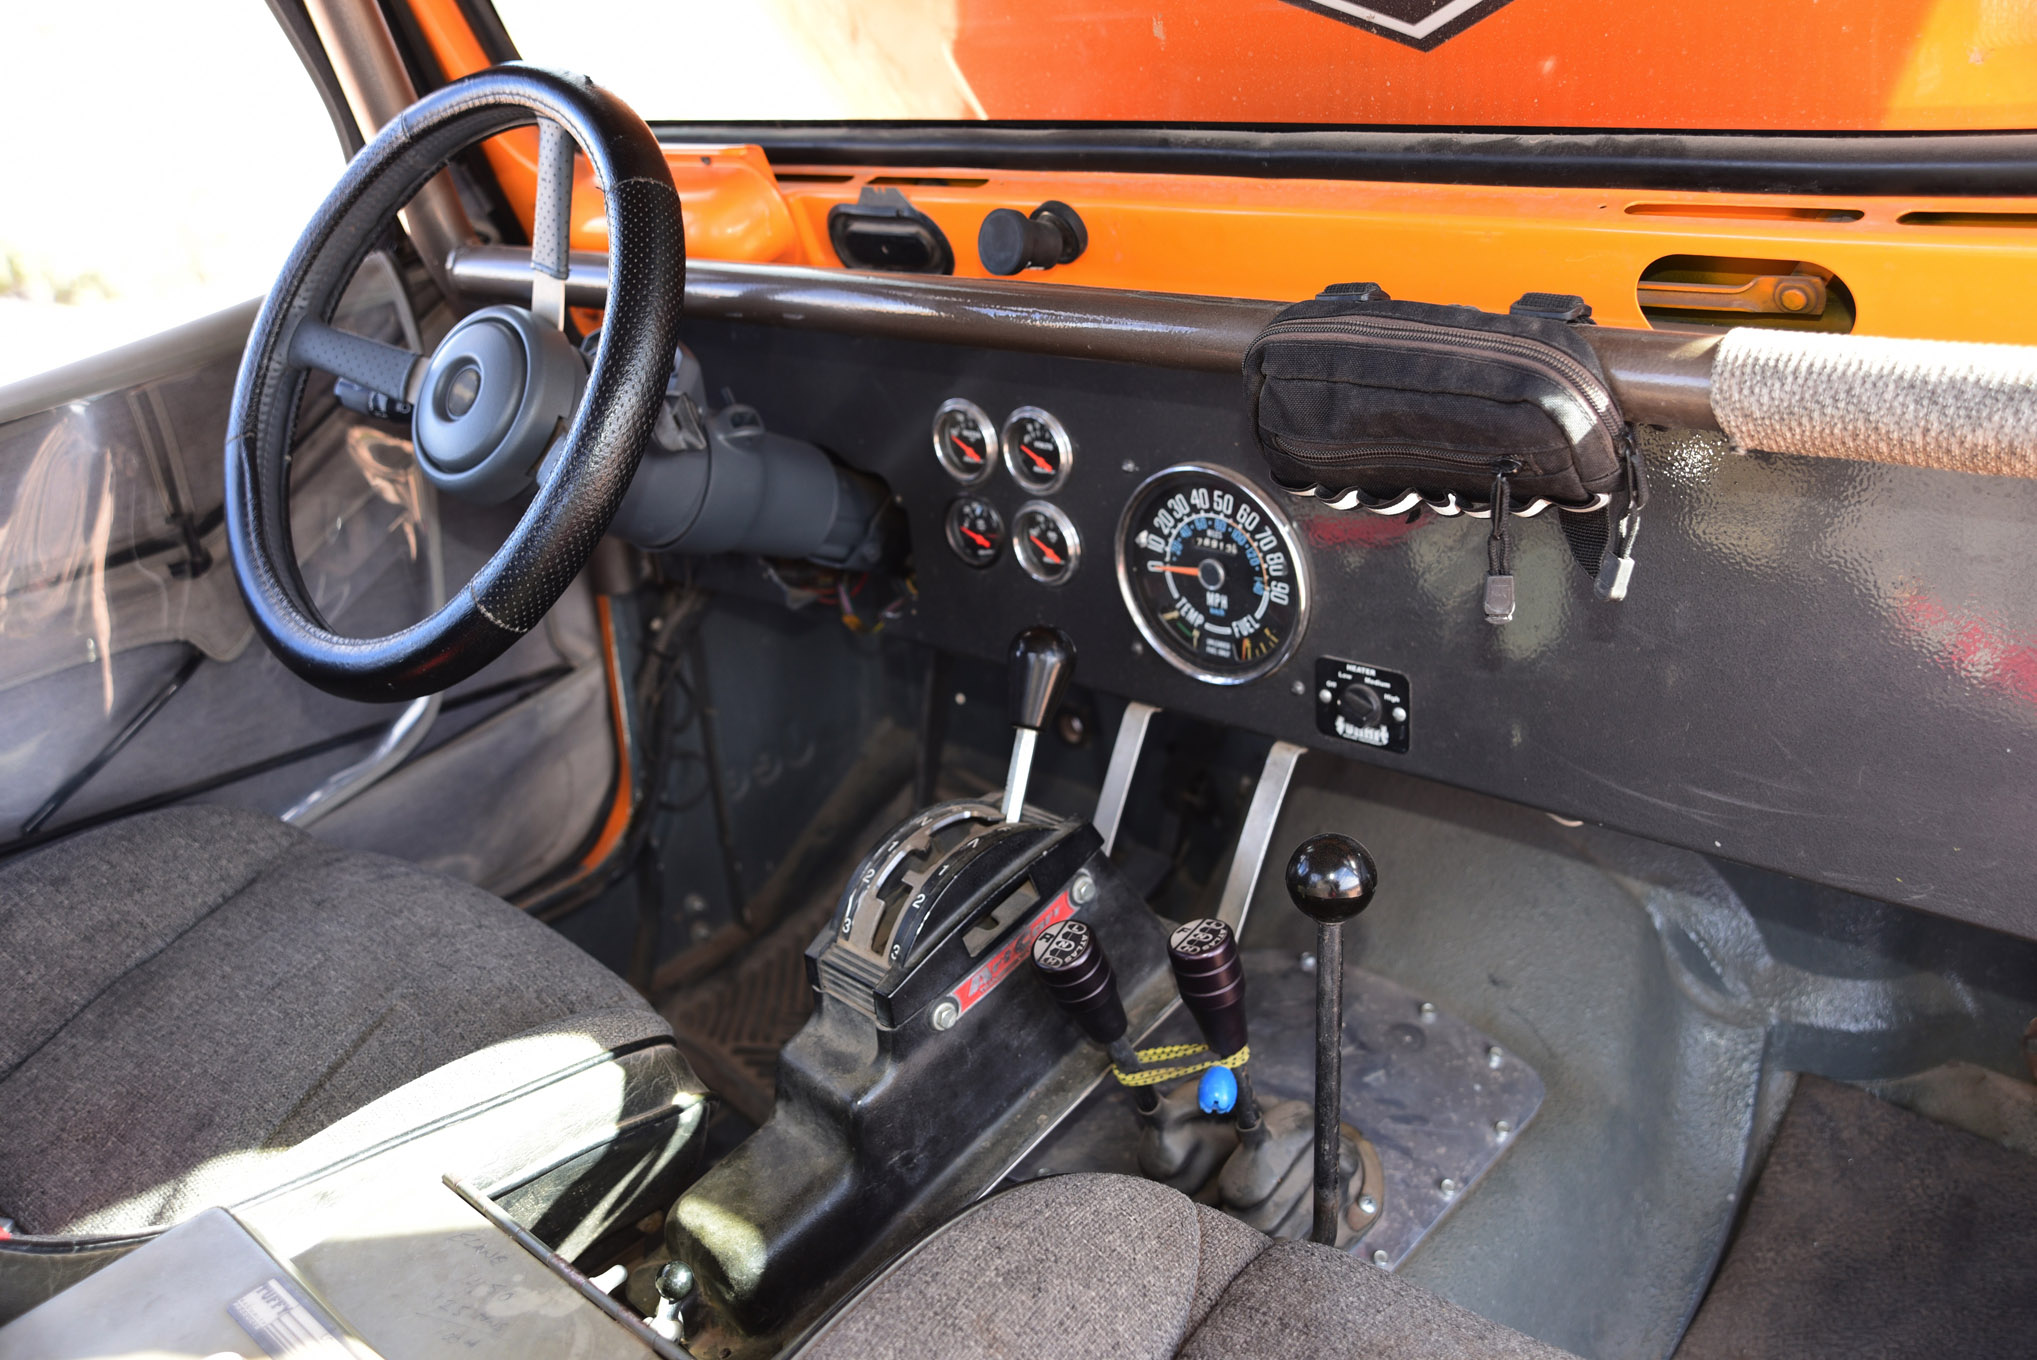 Interior appointments are minimalistic. Beard seats, a fairly bare dash, the important auxiliary gauges, a stock center-mounted speedo, an Art Carr shifter for the C4, and brake line lock switches just out of sight in front of the Tuffy center console are the highlights.